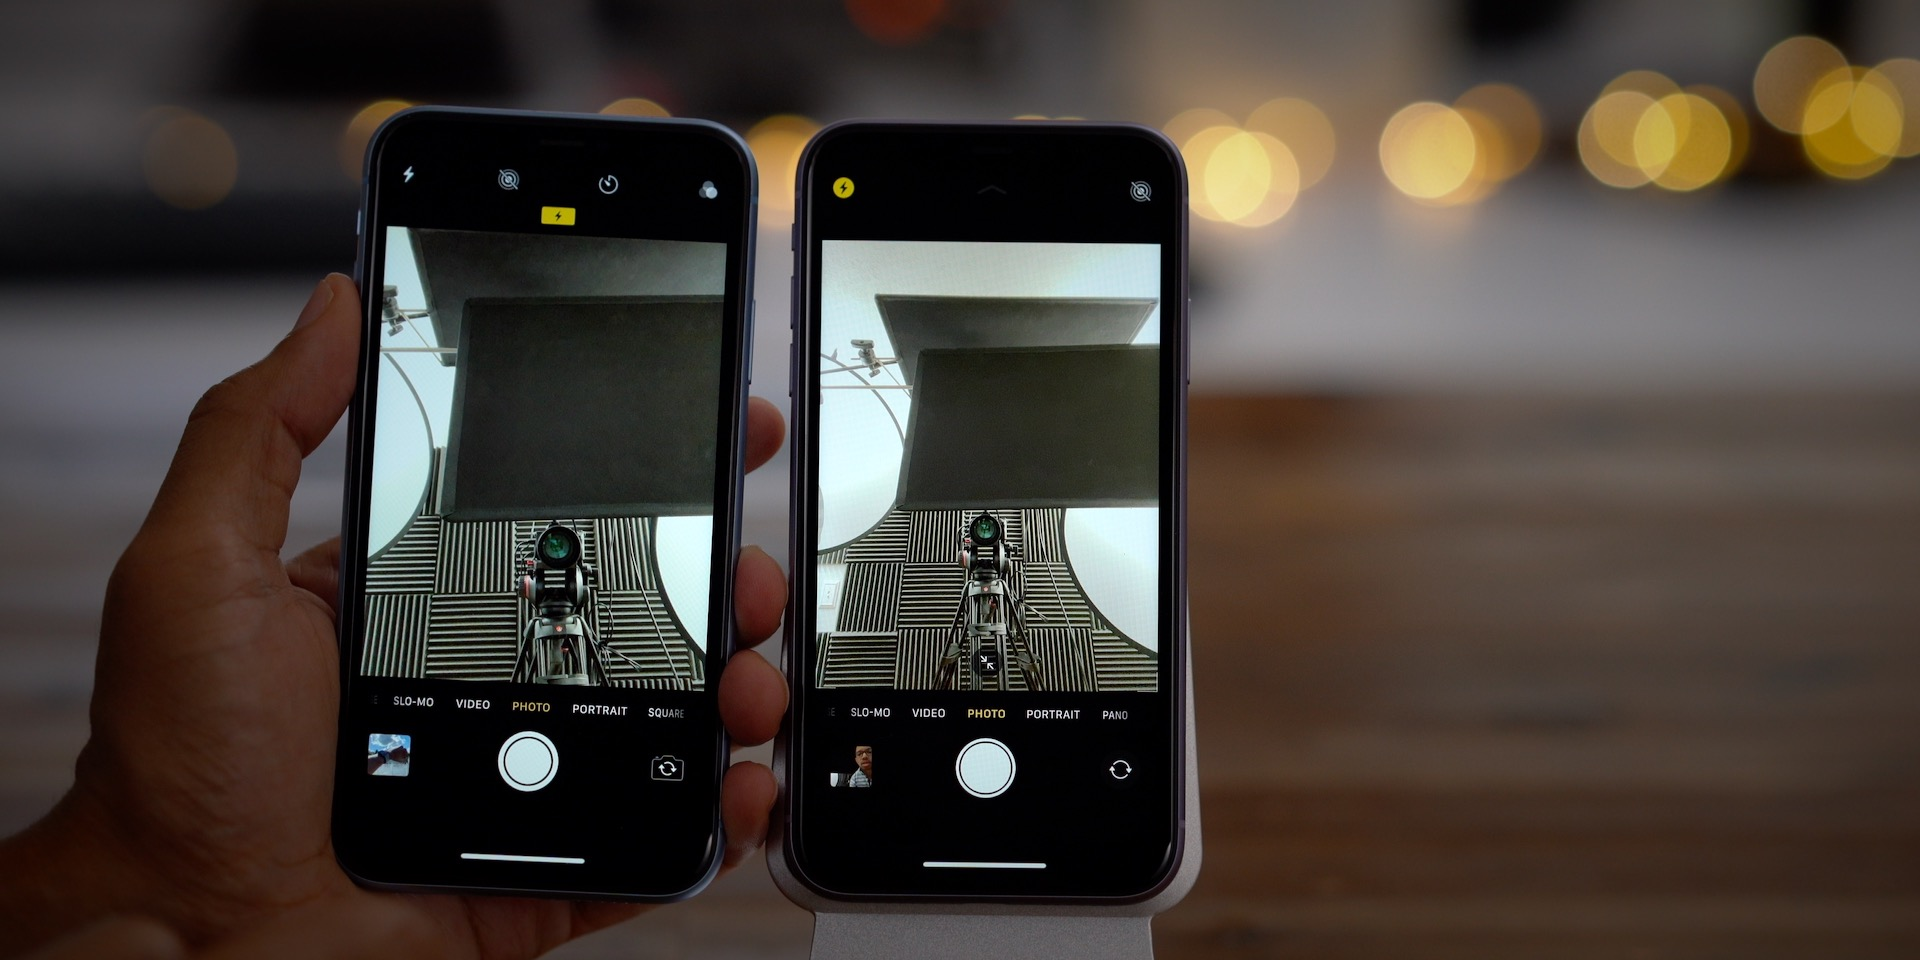 Iphone 11 And Iphone Xr Which Is Better